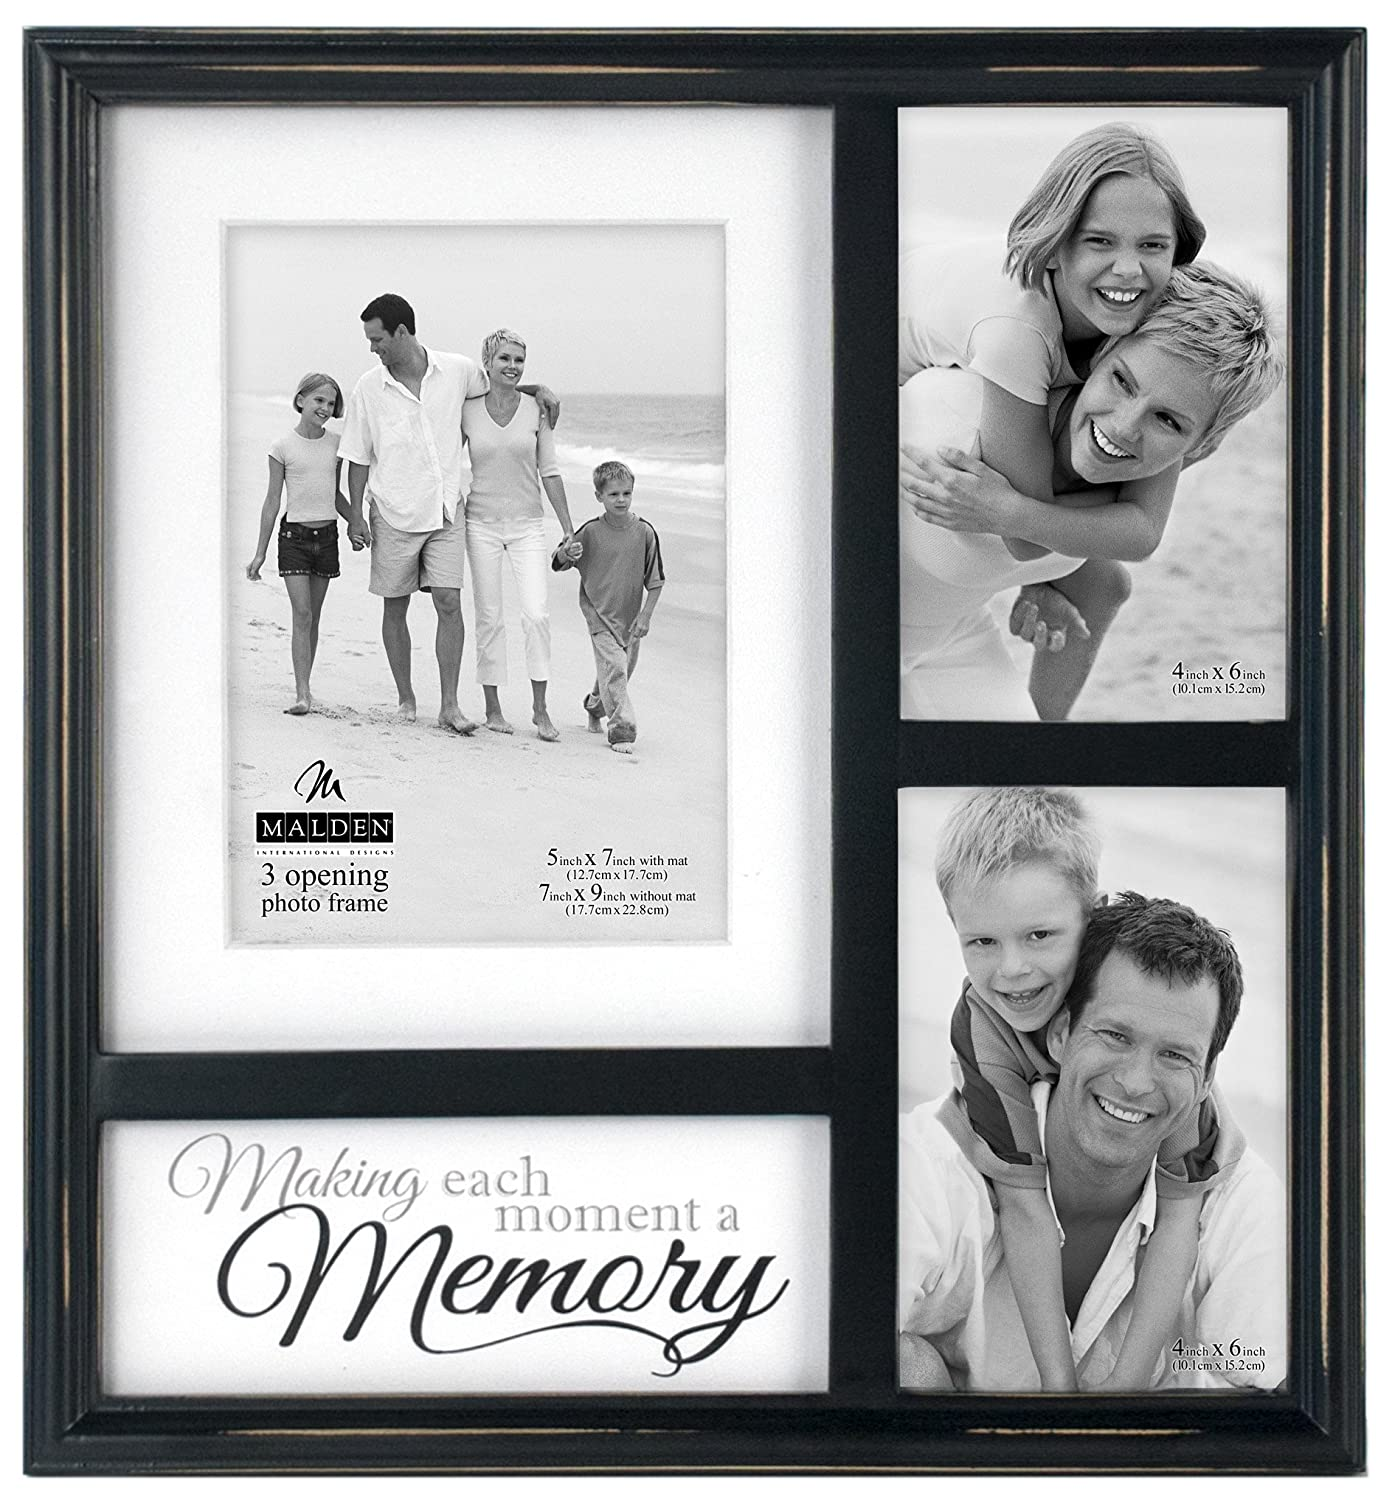 Amazon.com - Malden International Designs Memory Mat Collage Picture ...